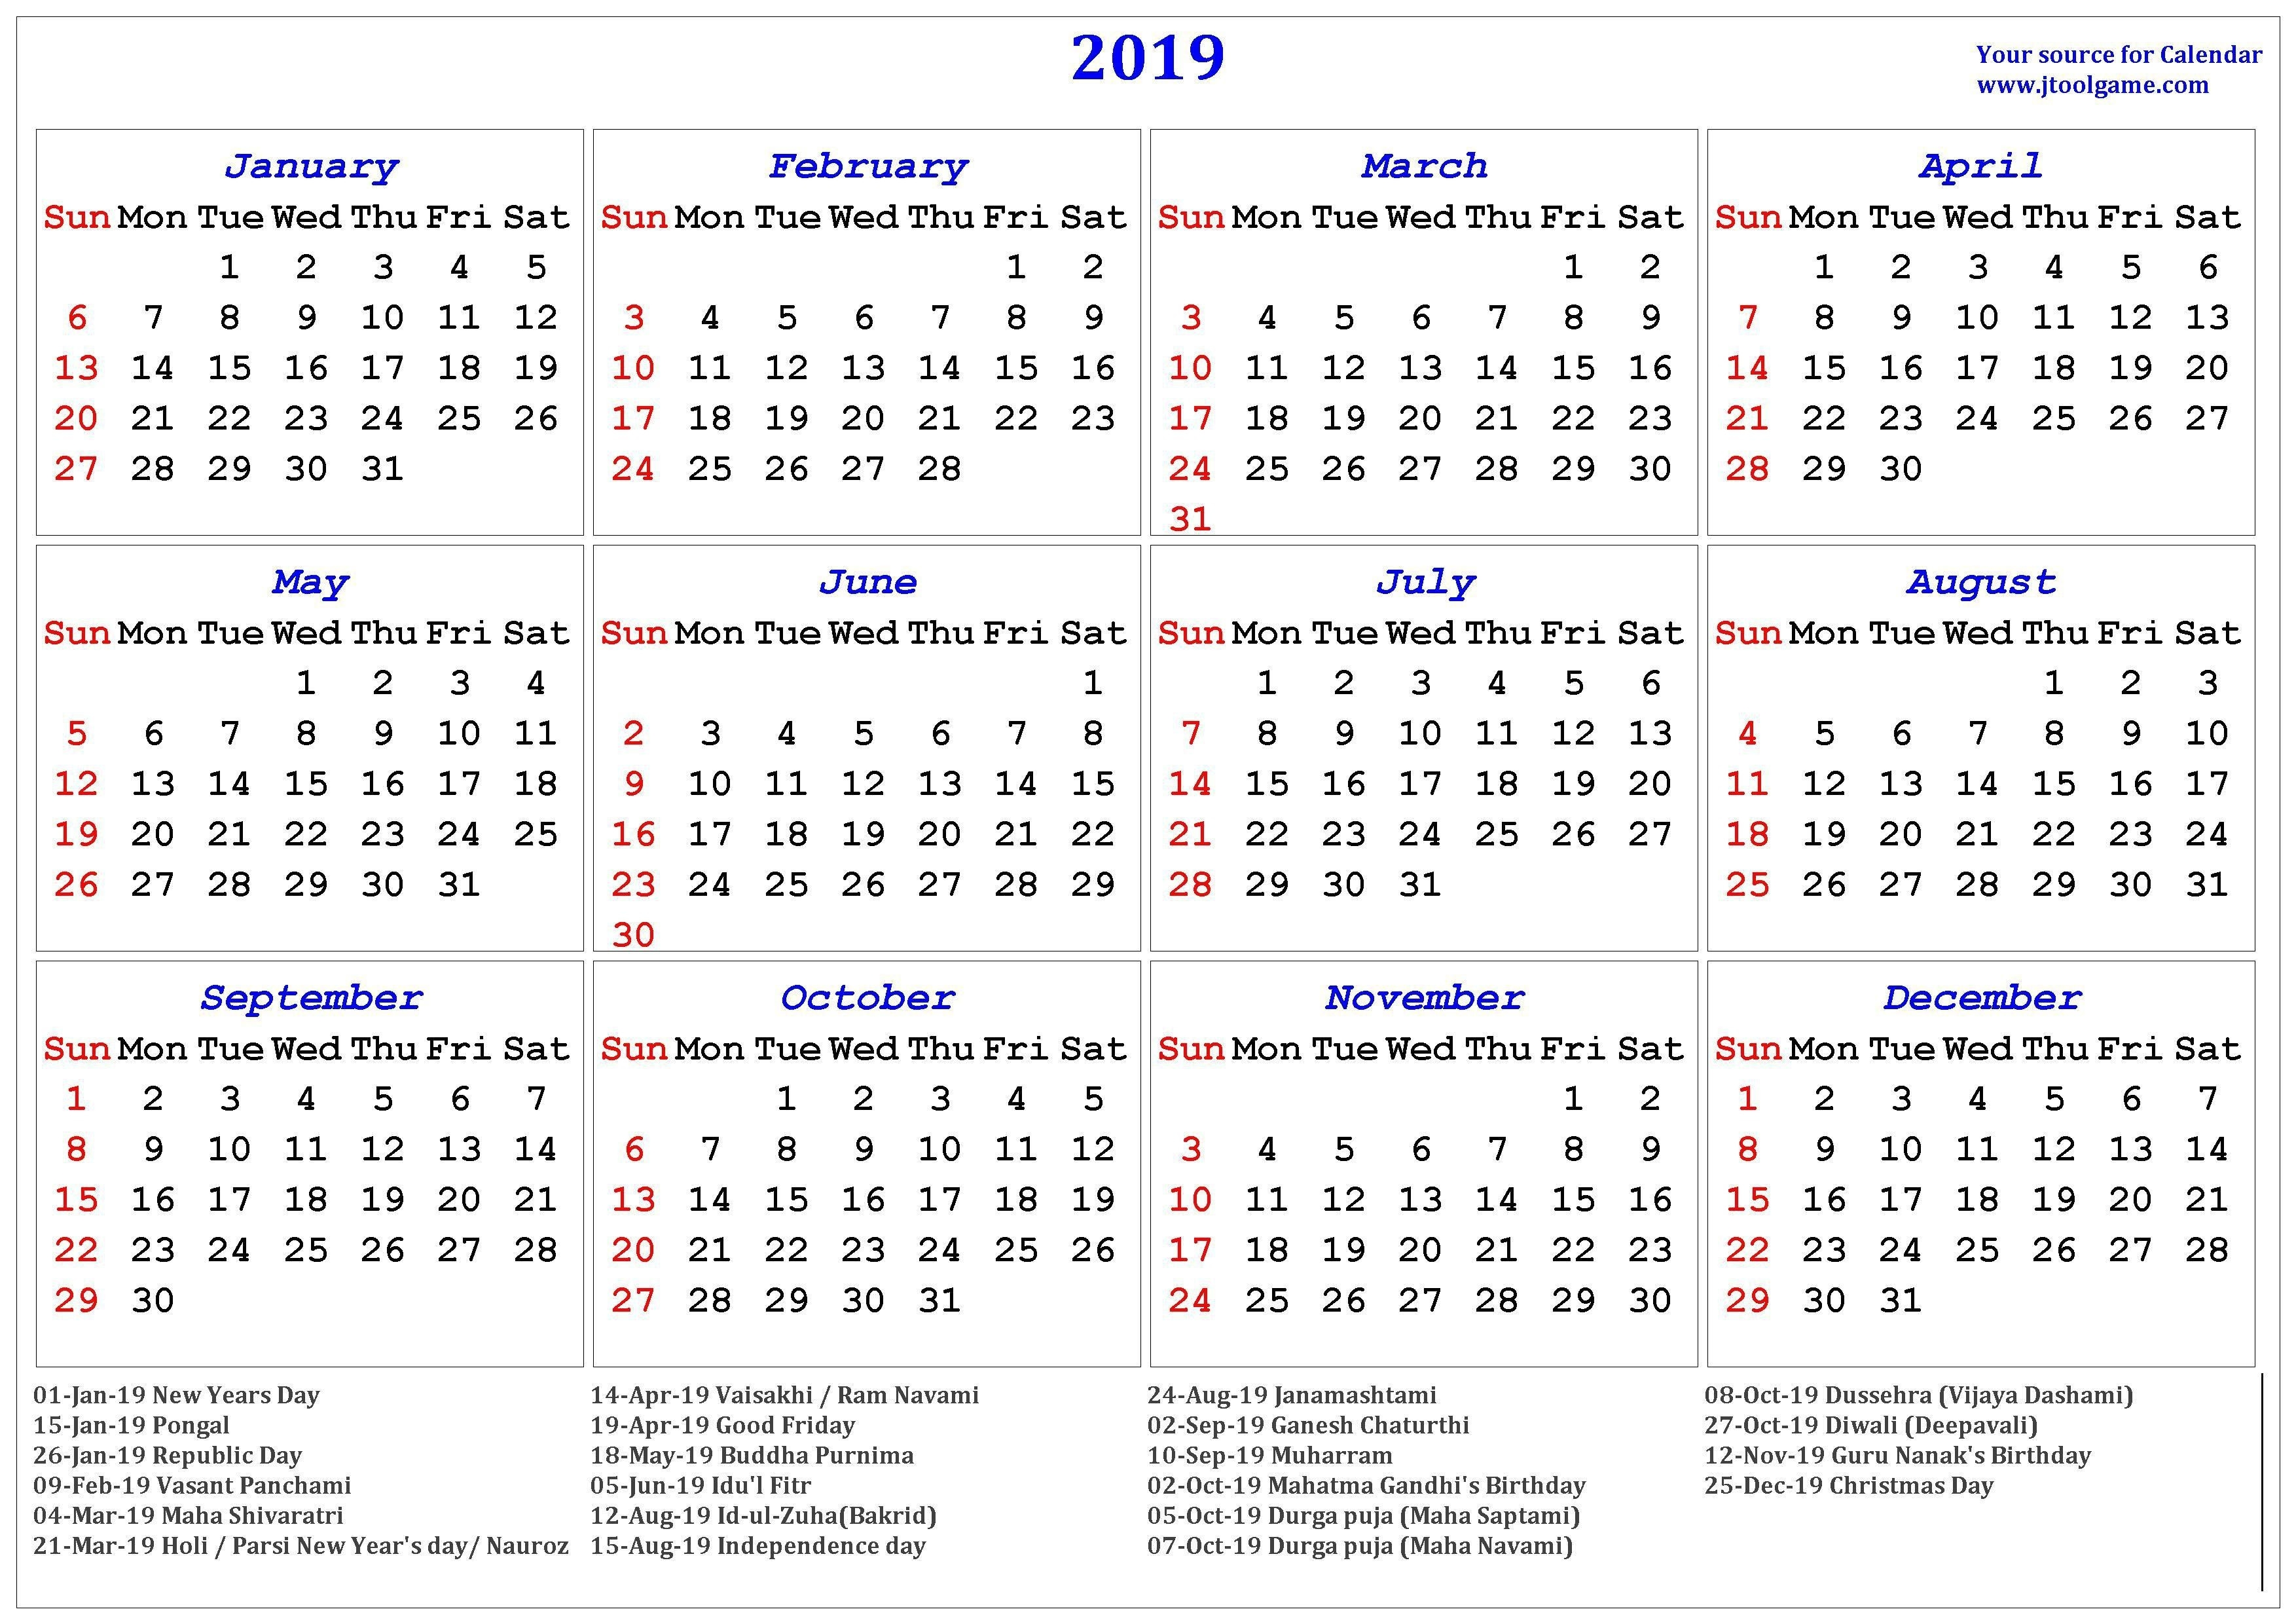 2019 Hindu Calendar With Tithi | Tyohar, Holidays, Festivals-January 2020 Ka Calendar